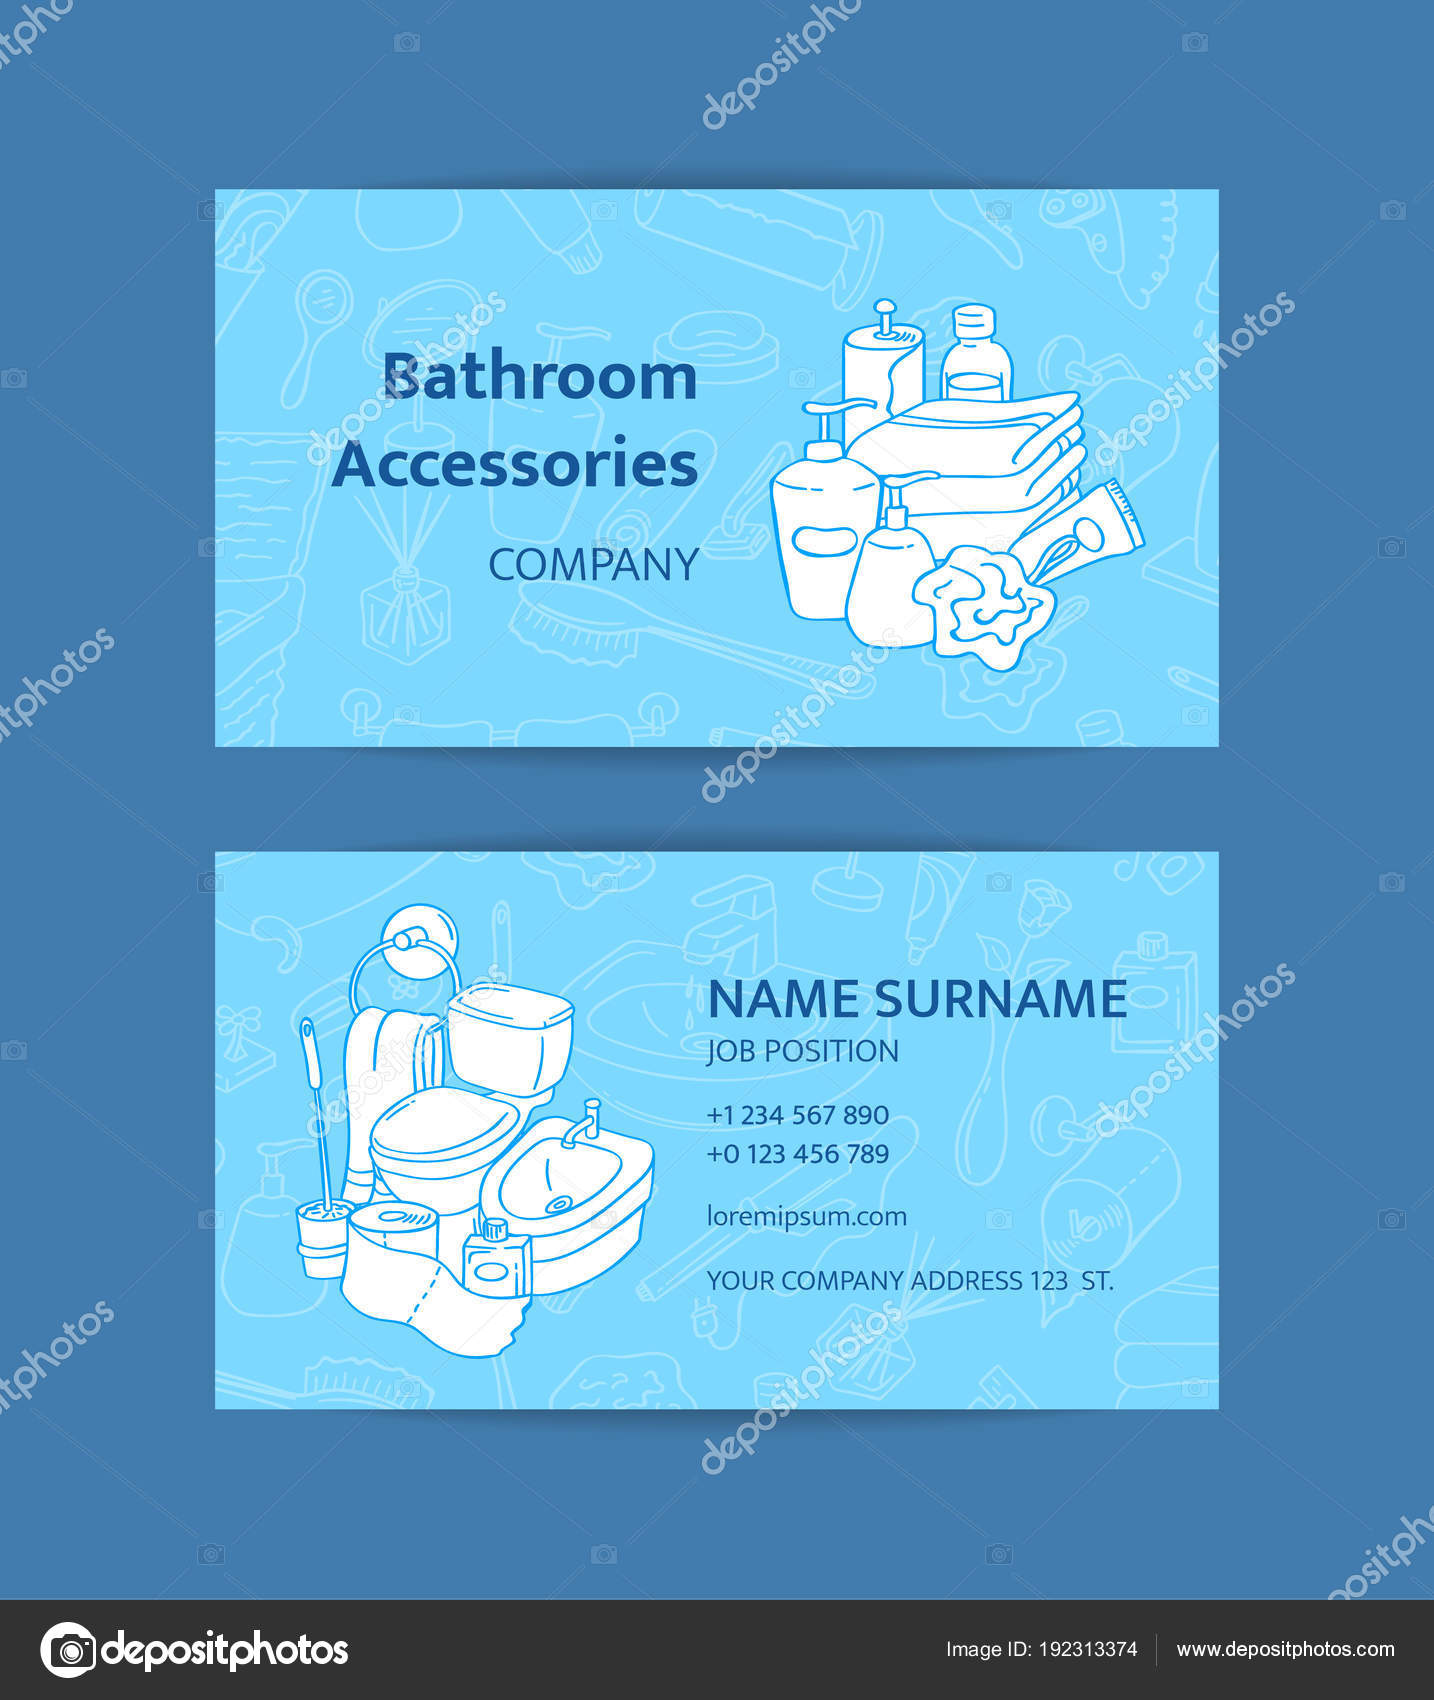 Vector business card template with hand drawn doodle bathroom vector business card template with hand drawn doodle bathroom elements for bathroom accessories shop stock colourmoves